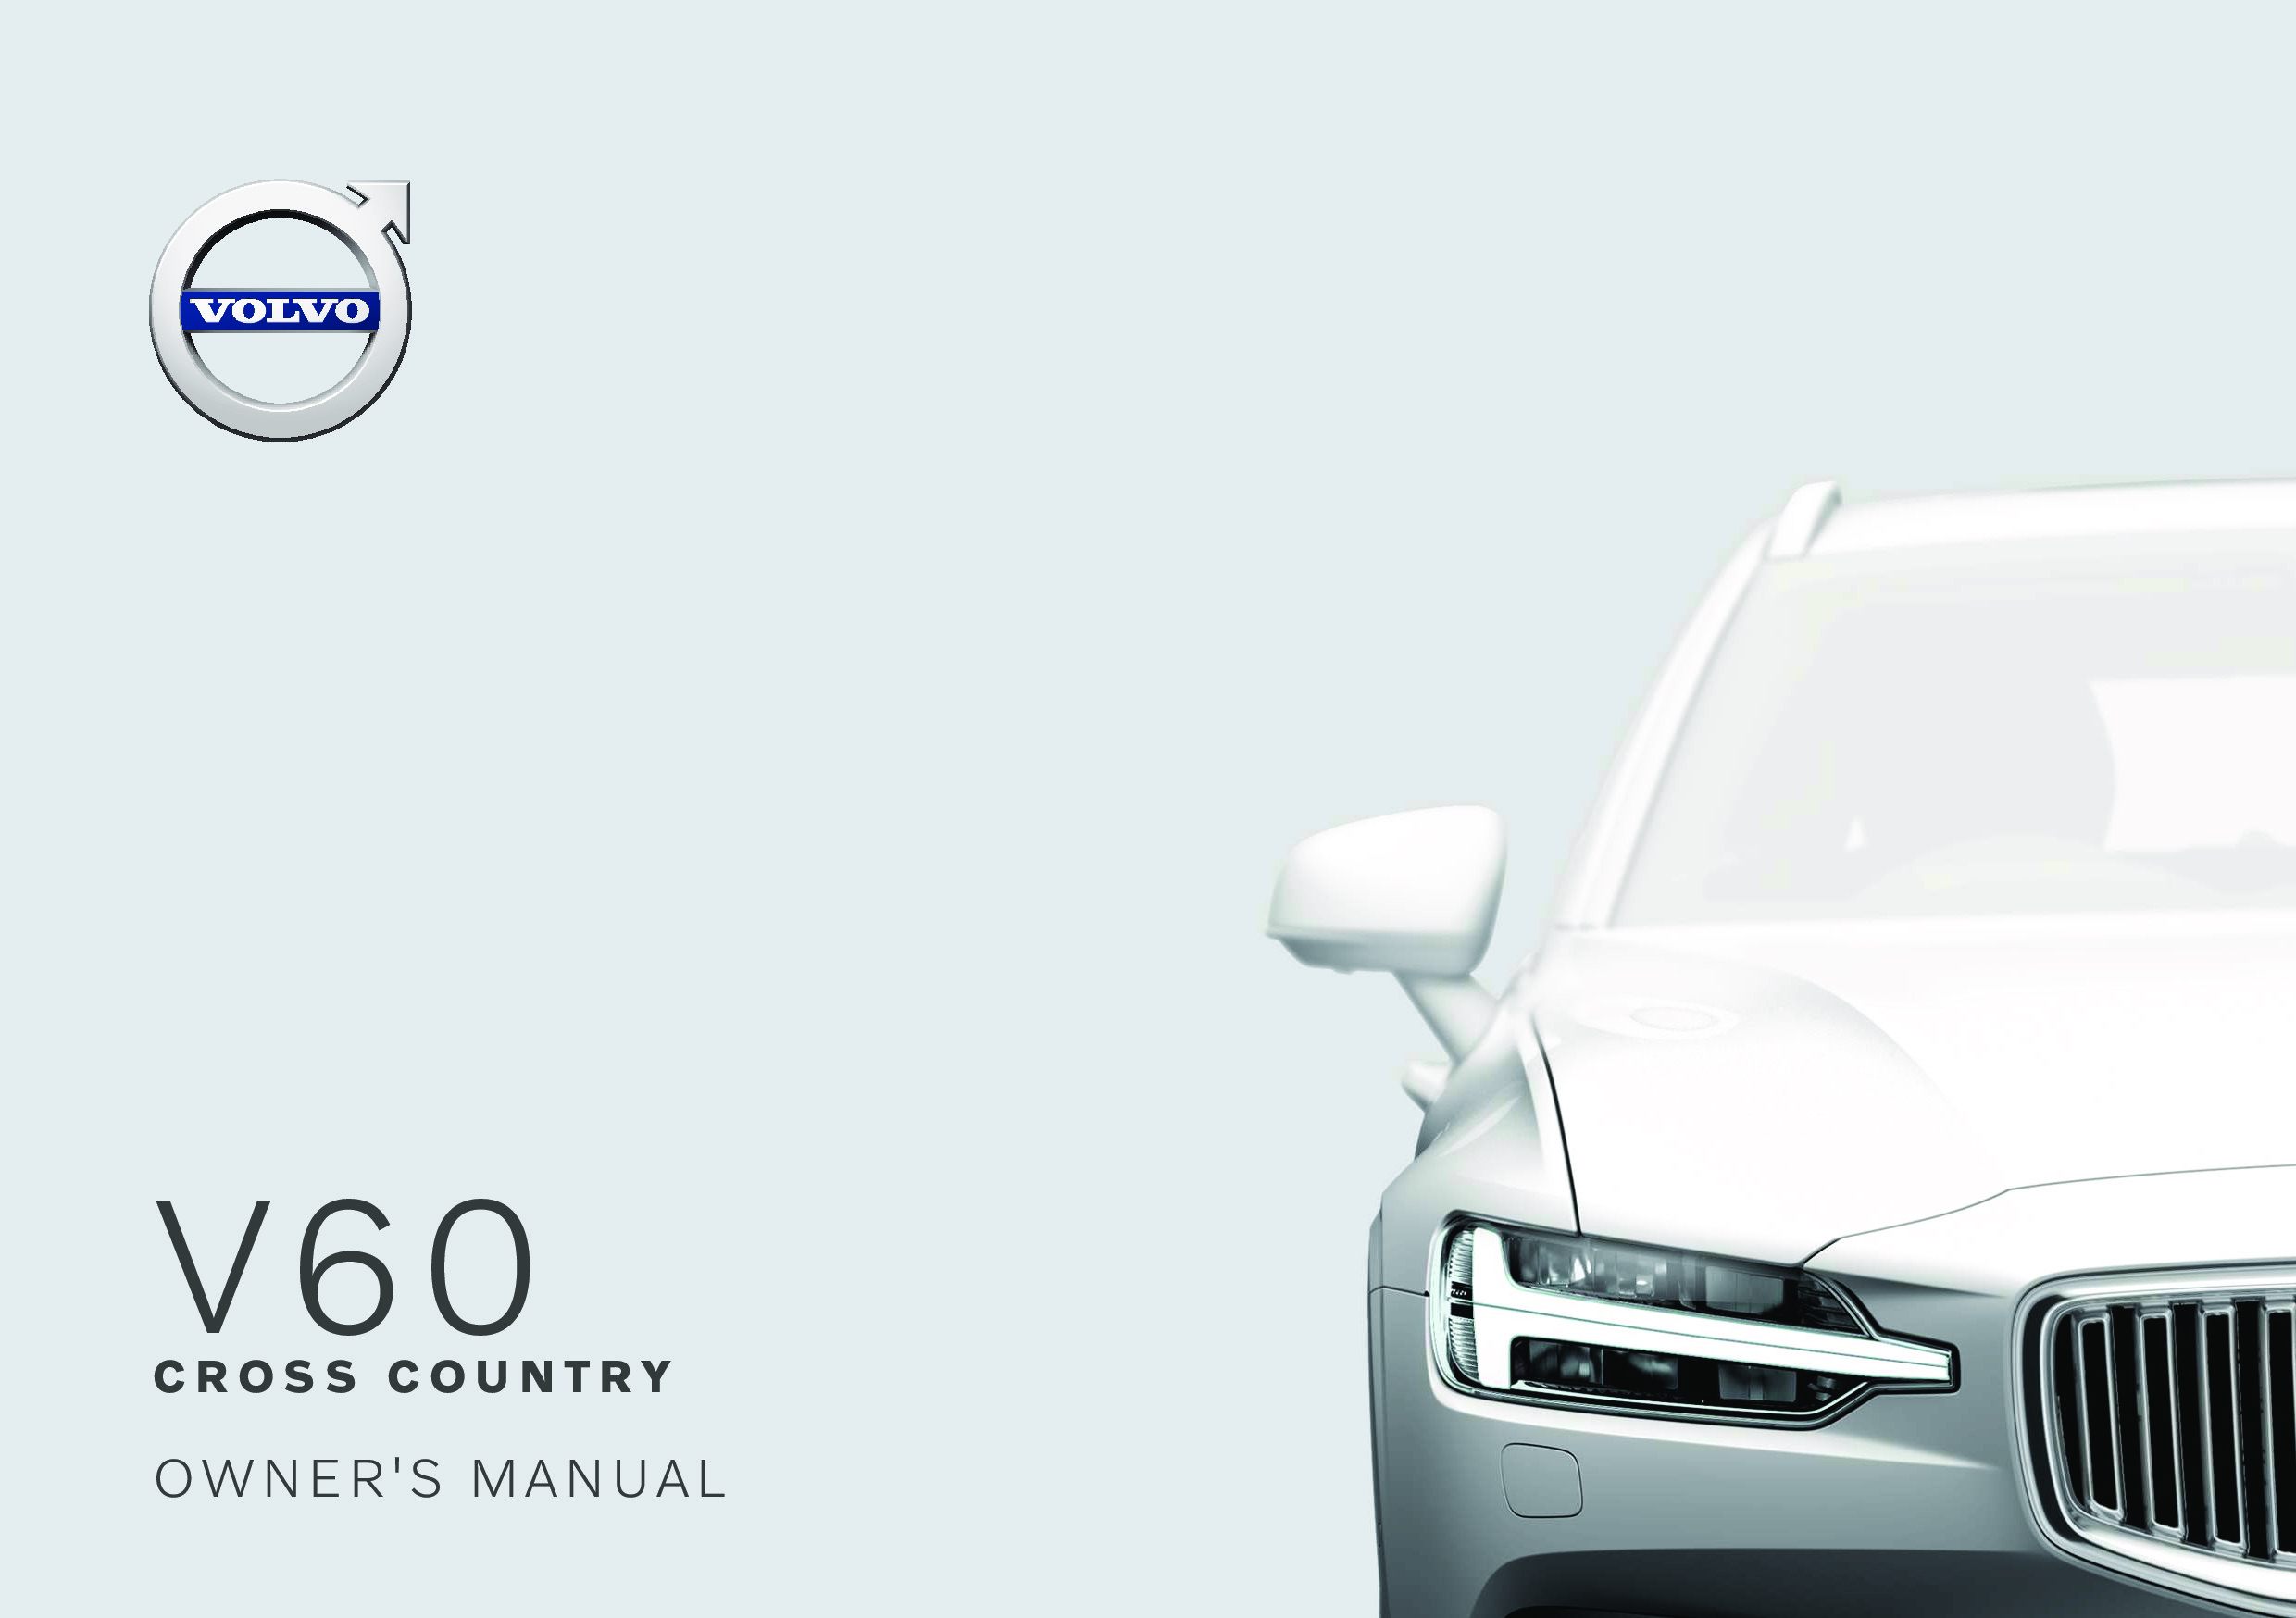 2021 Volvo V60 Cross Country owners manual